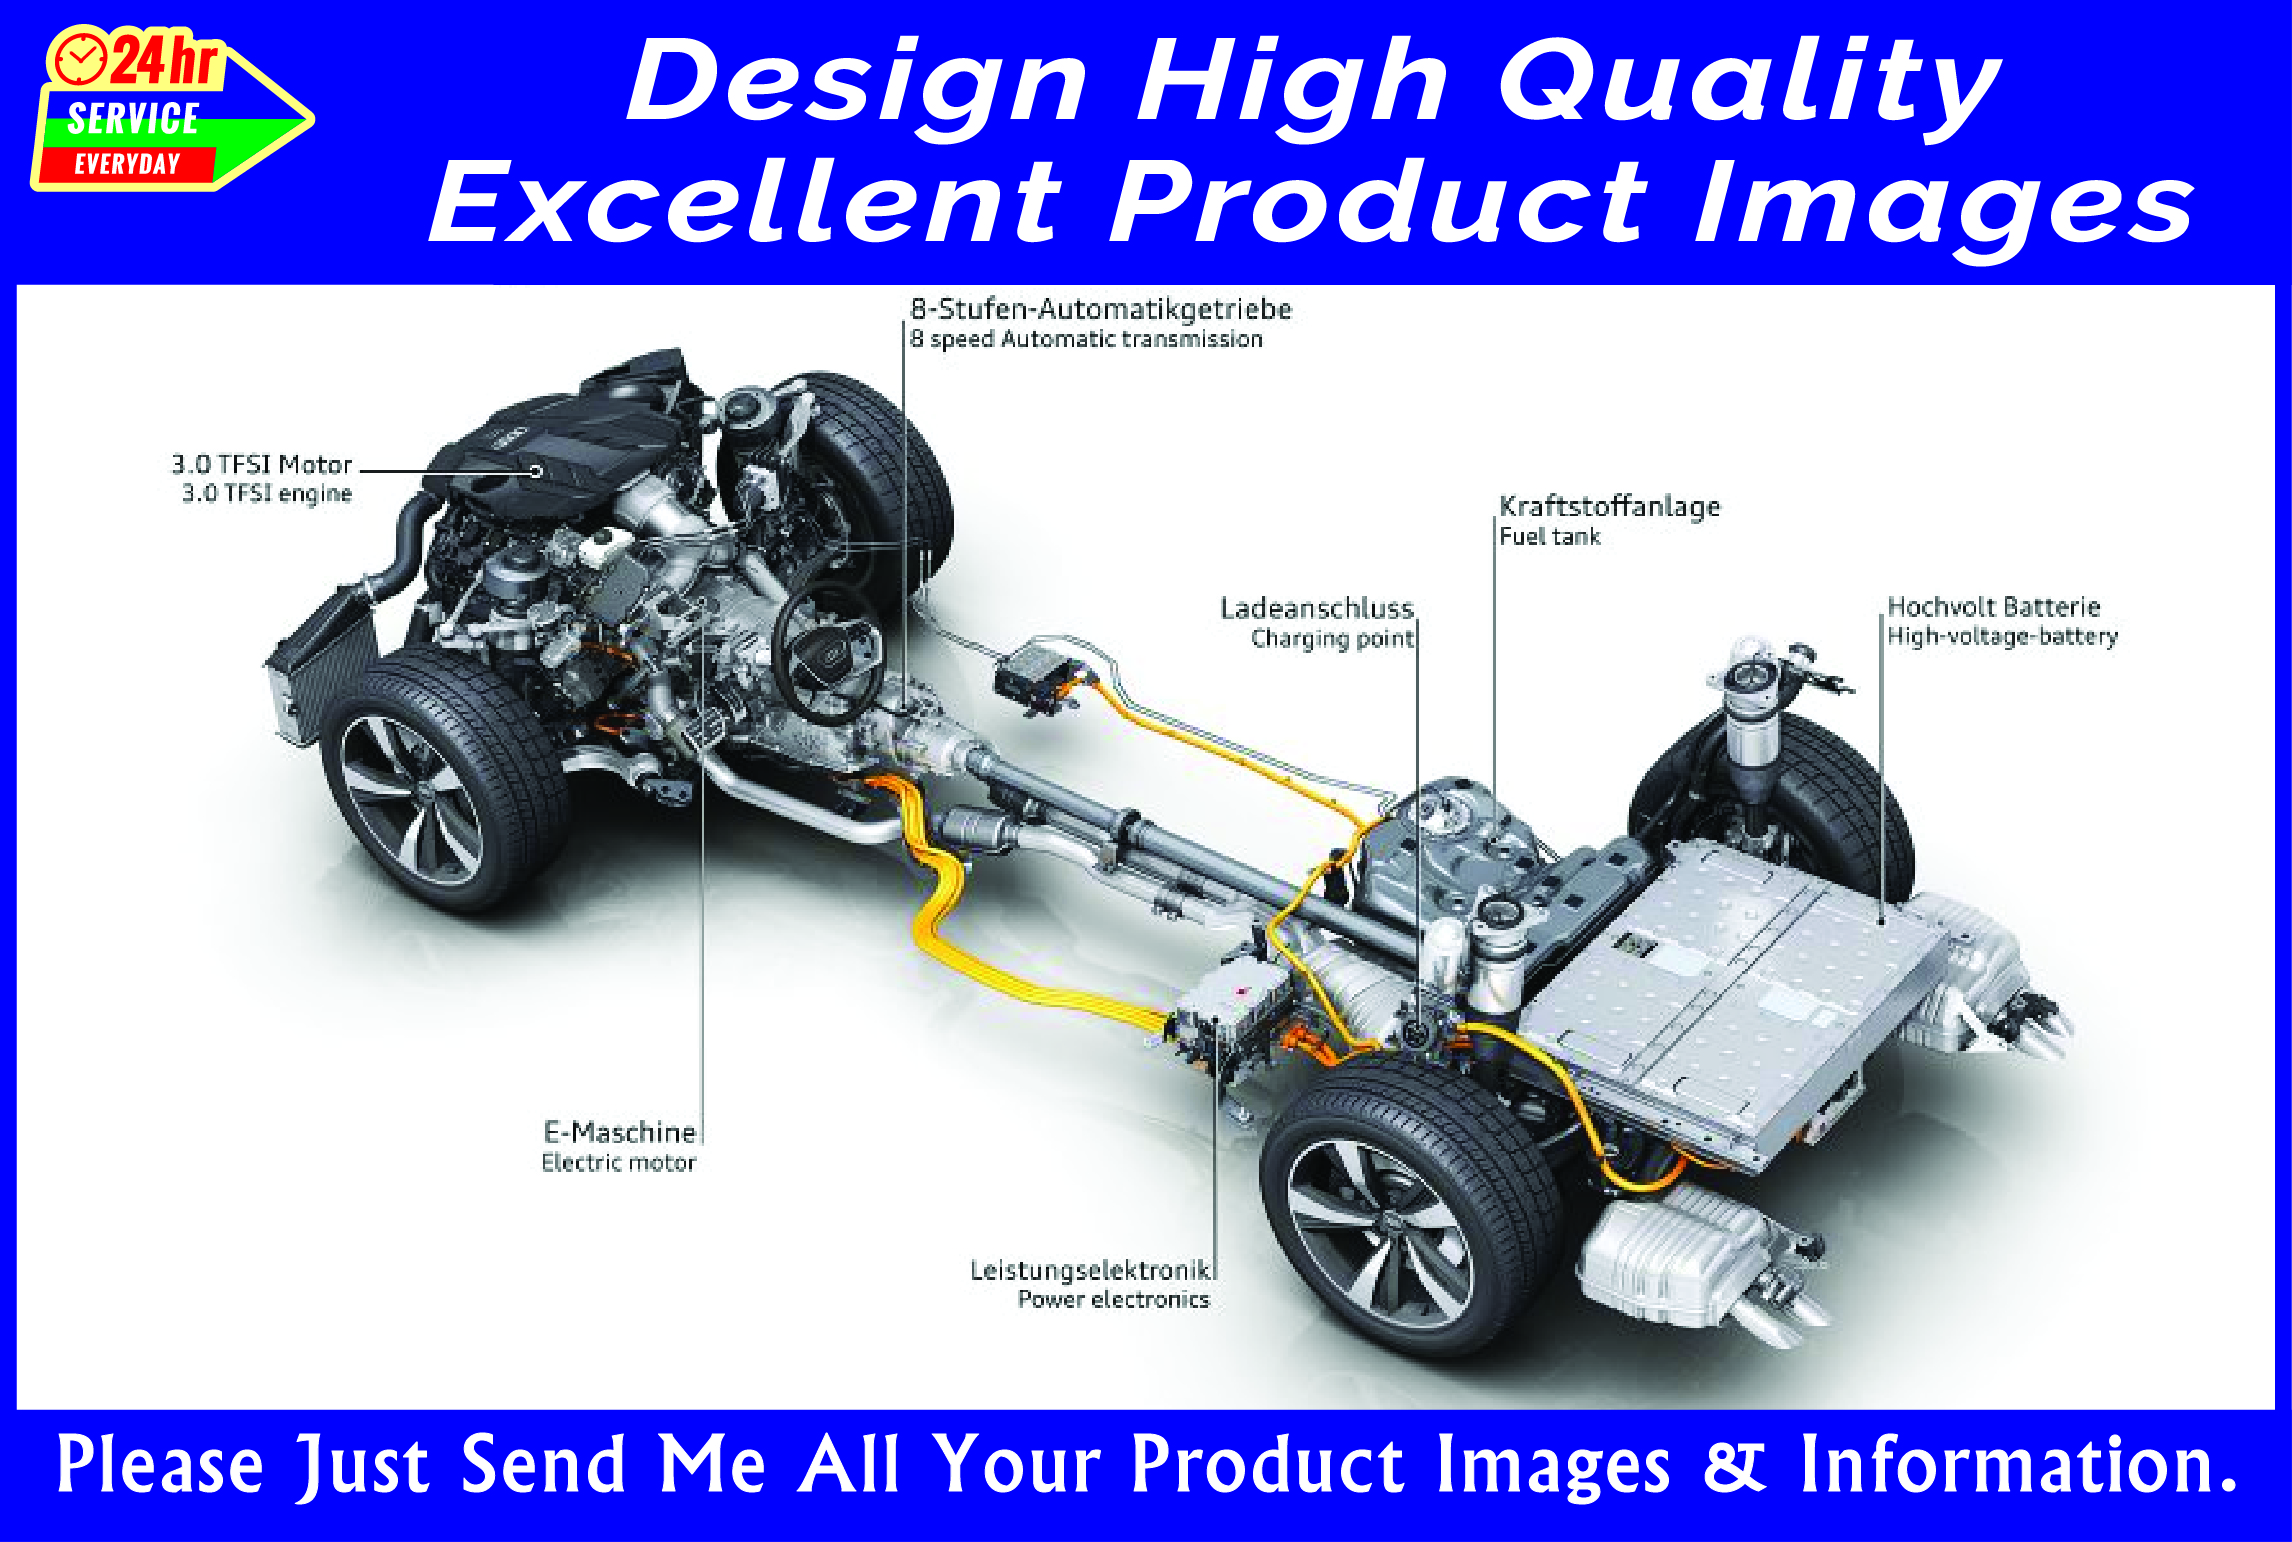 Design product image picture amazon ali express or any shop